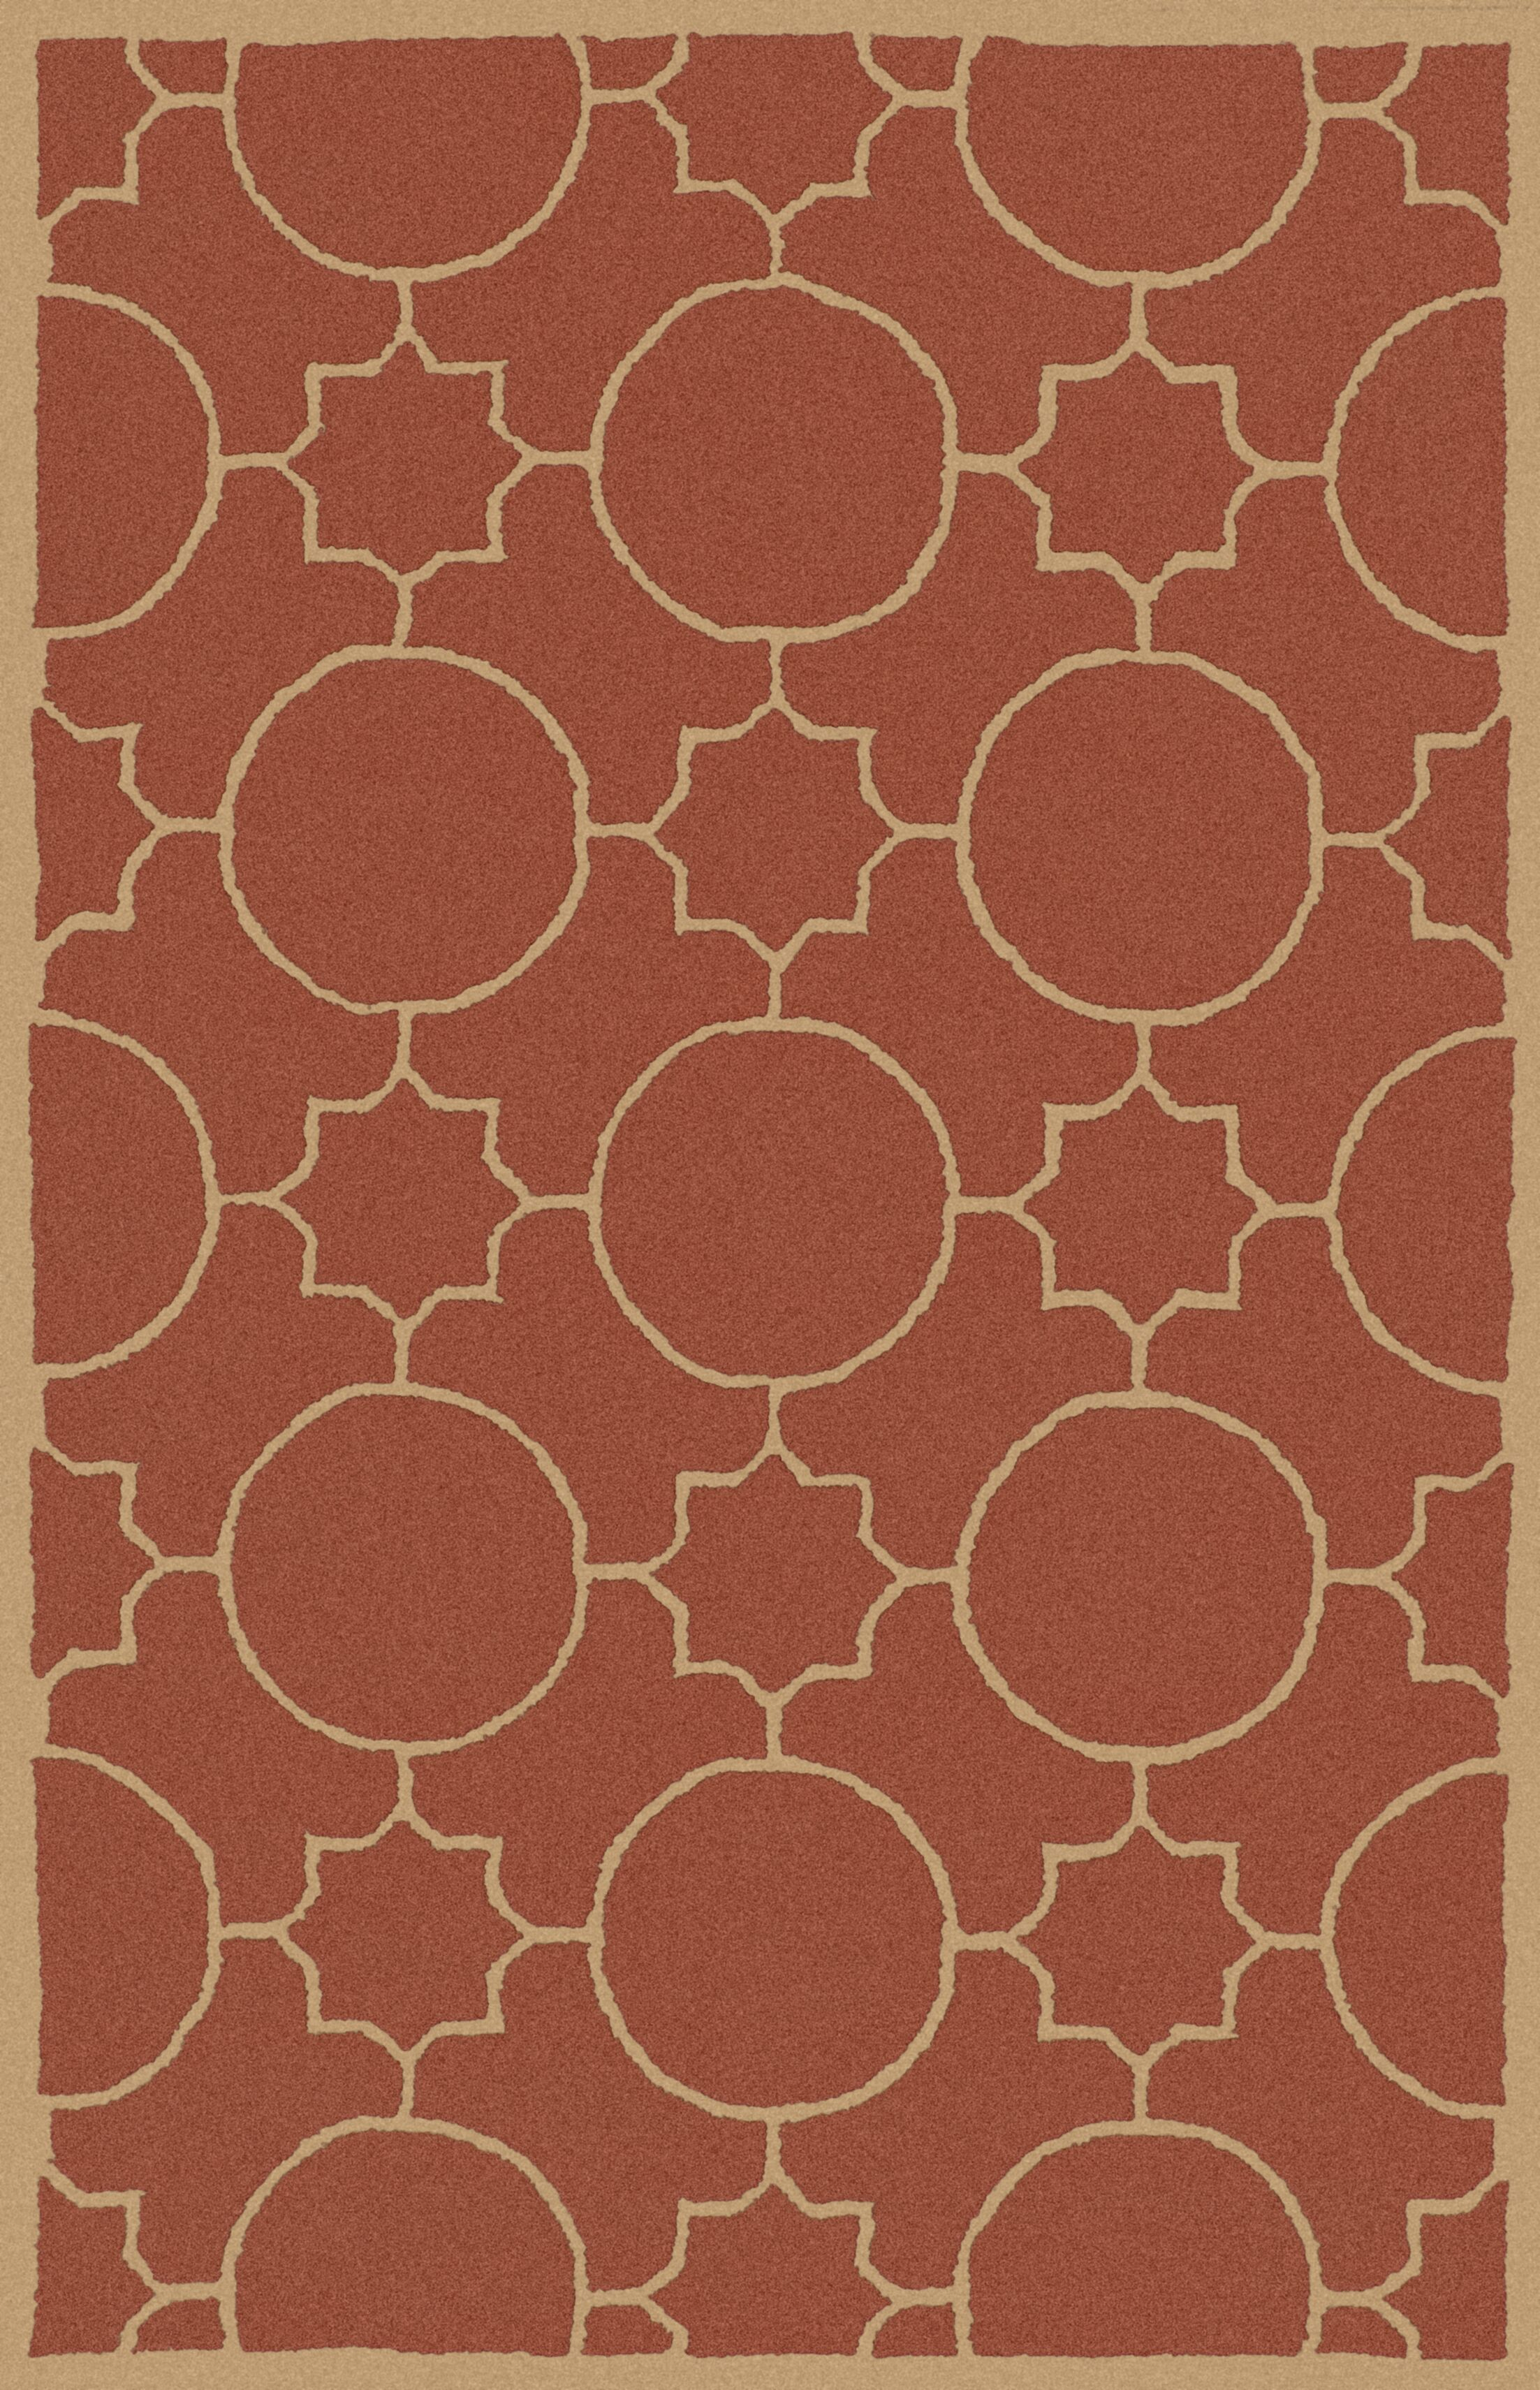 Lepus Geometric Hand-Tufted Wool Burnt Orange/Wheat Area Rug Rug Size: Rectangle 3'6